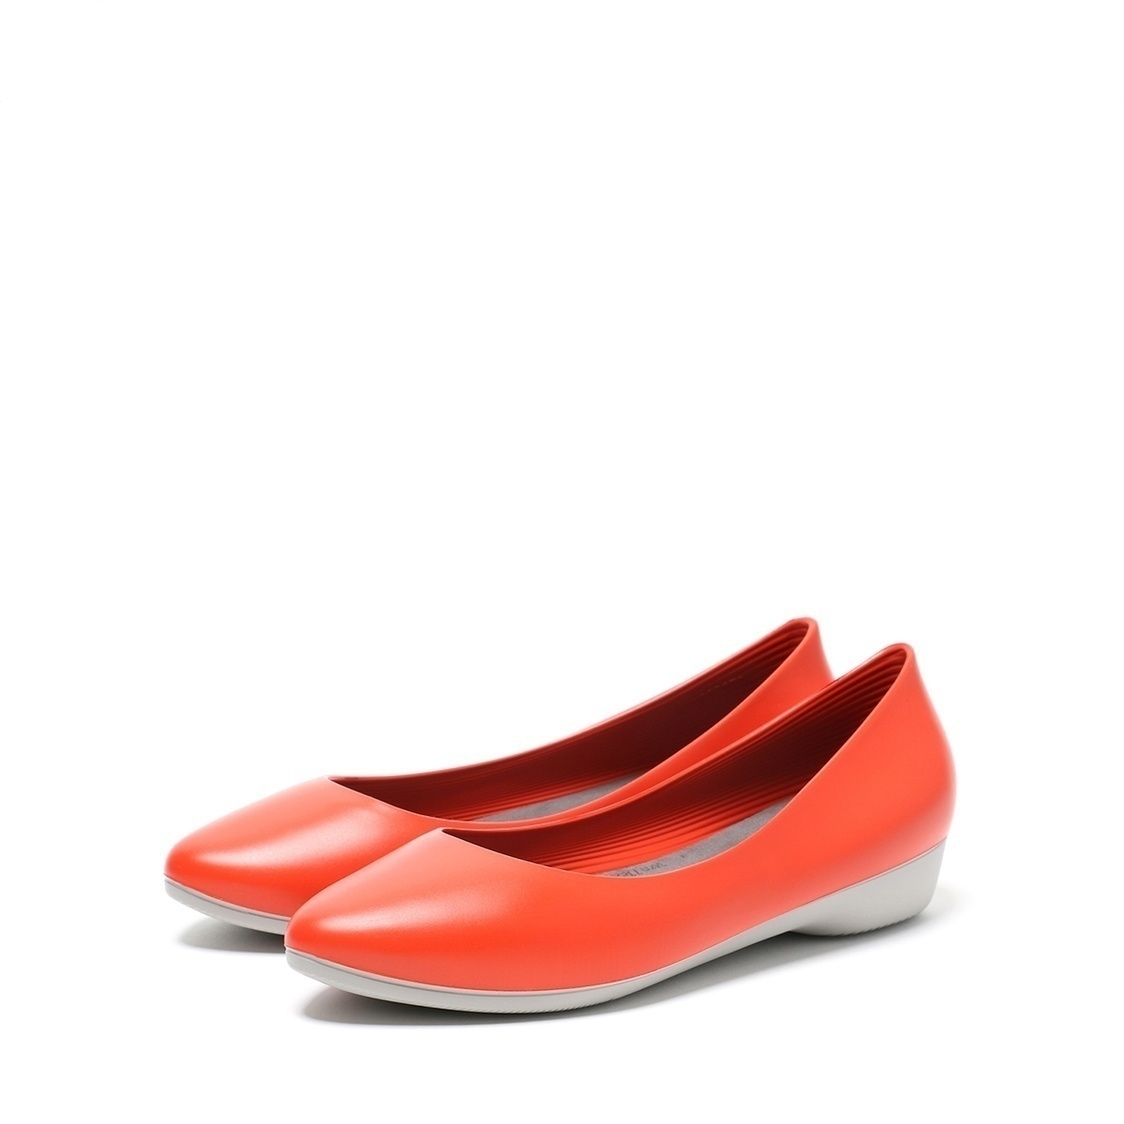 F3 Flat-Pointed Heel height 3cm Coral Red